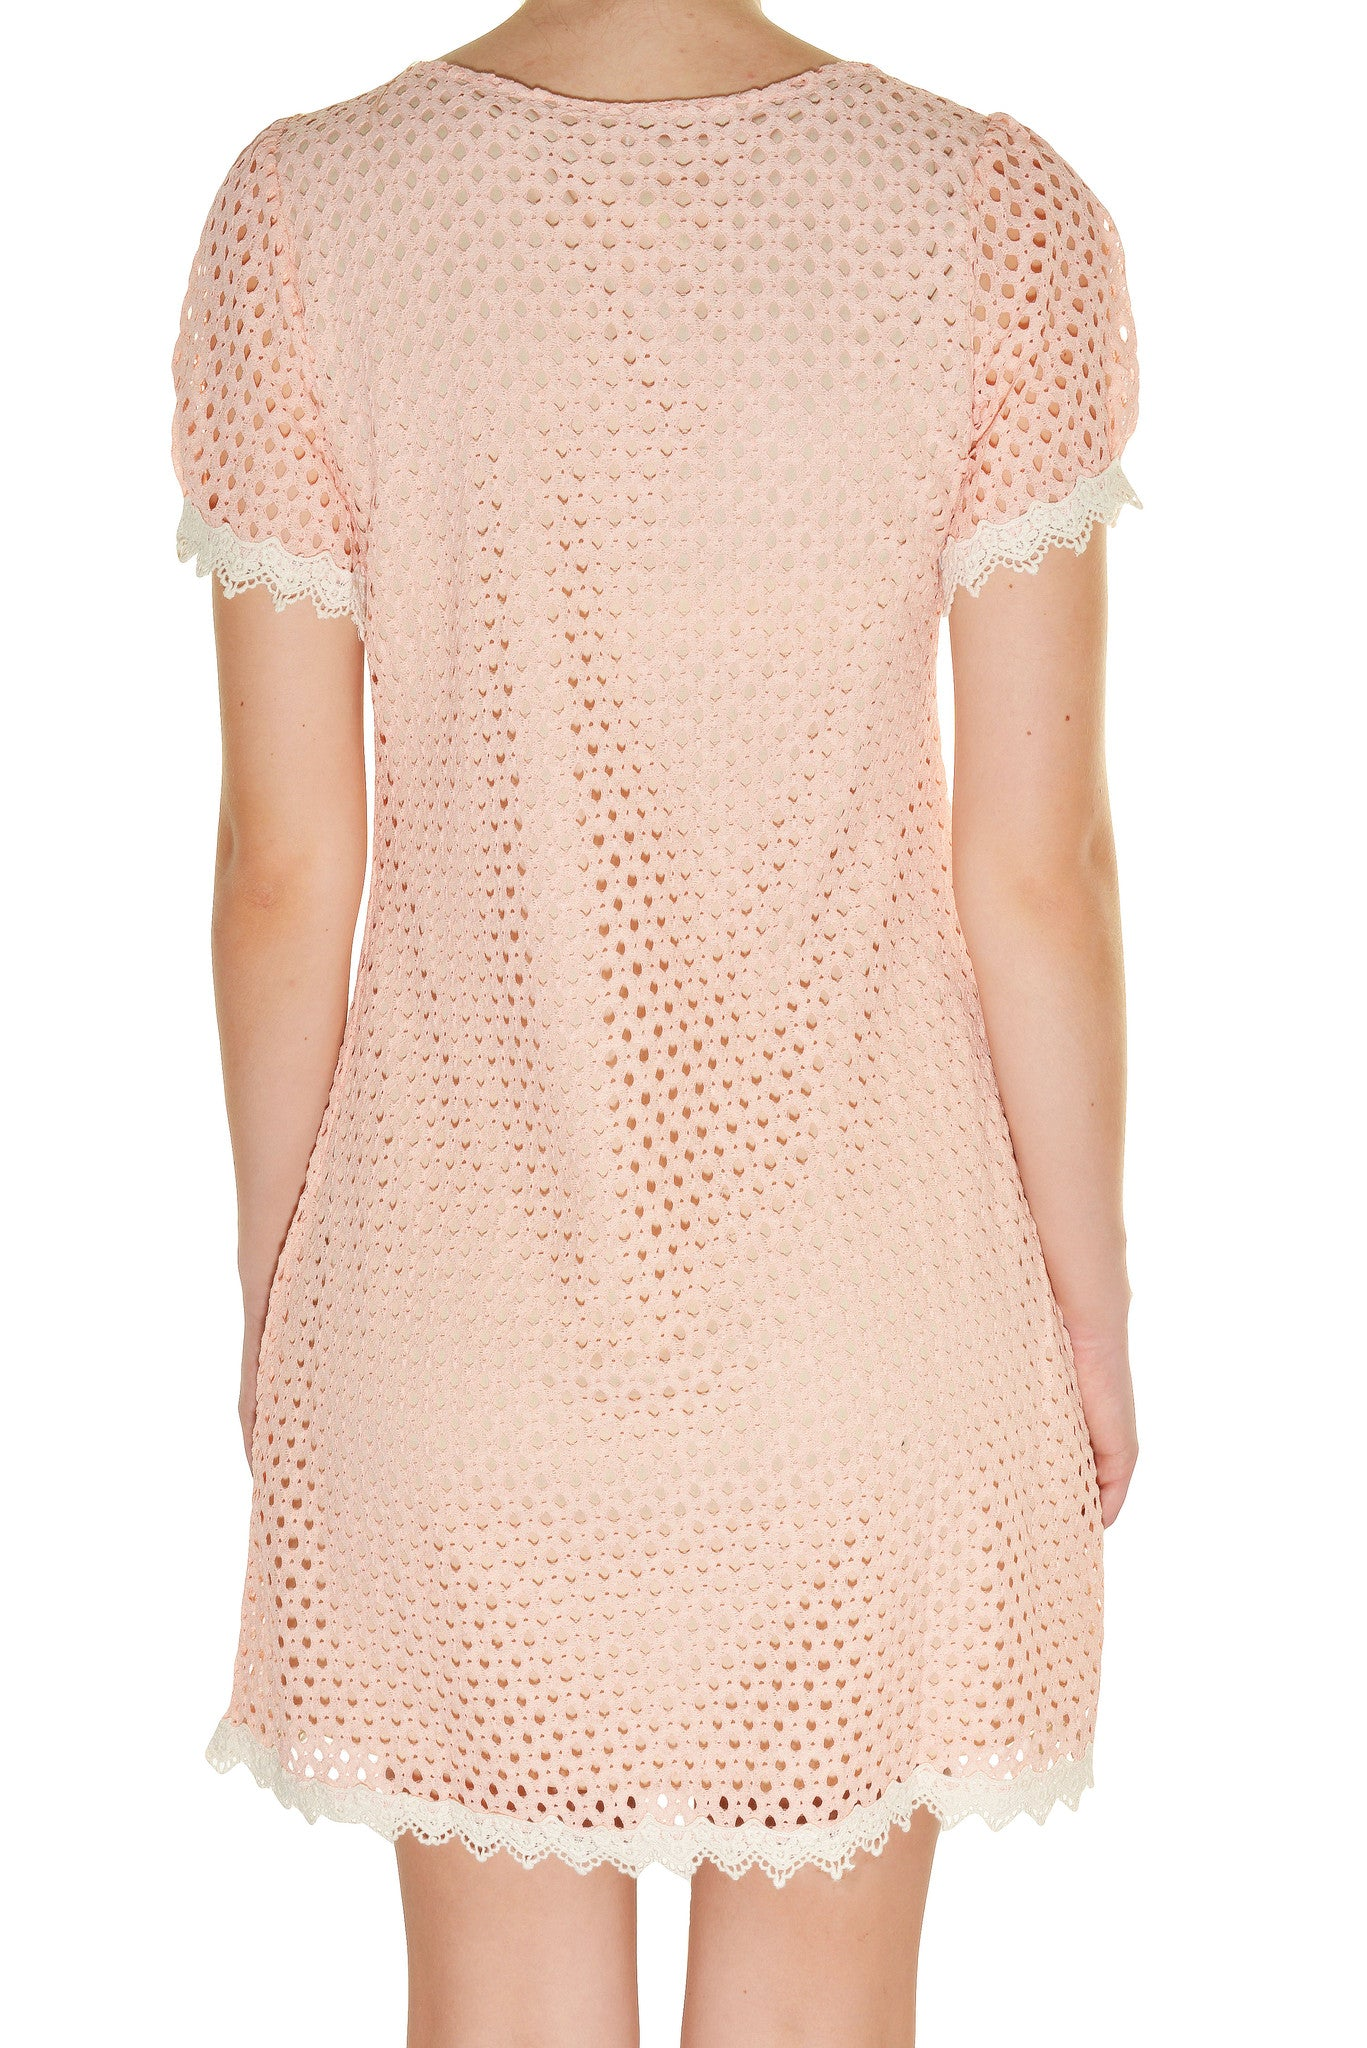 Banana USA Eyelet Micro Mod Dress (Peach Pink),Dress,Banana USA - Discount Divas